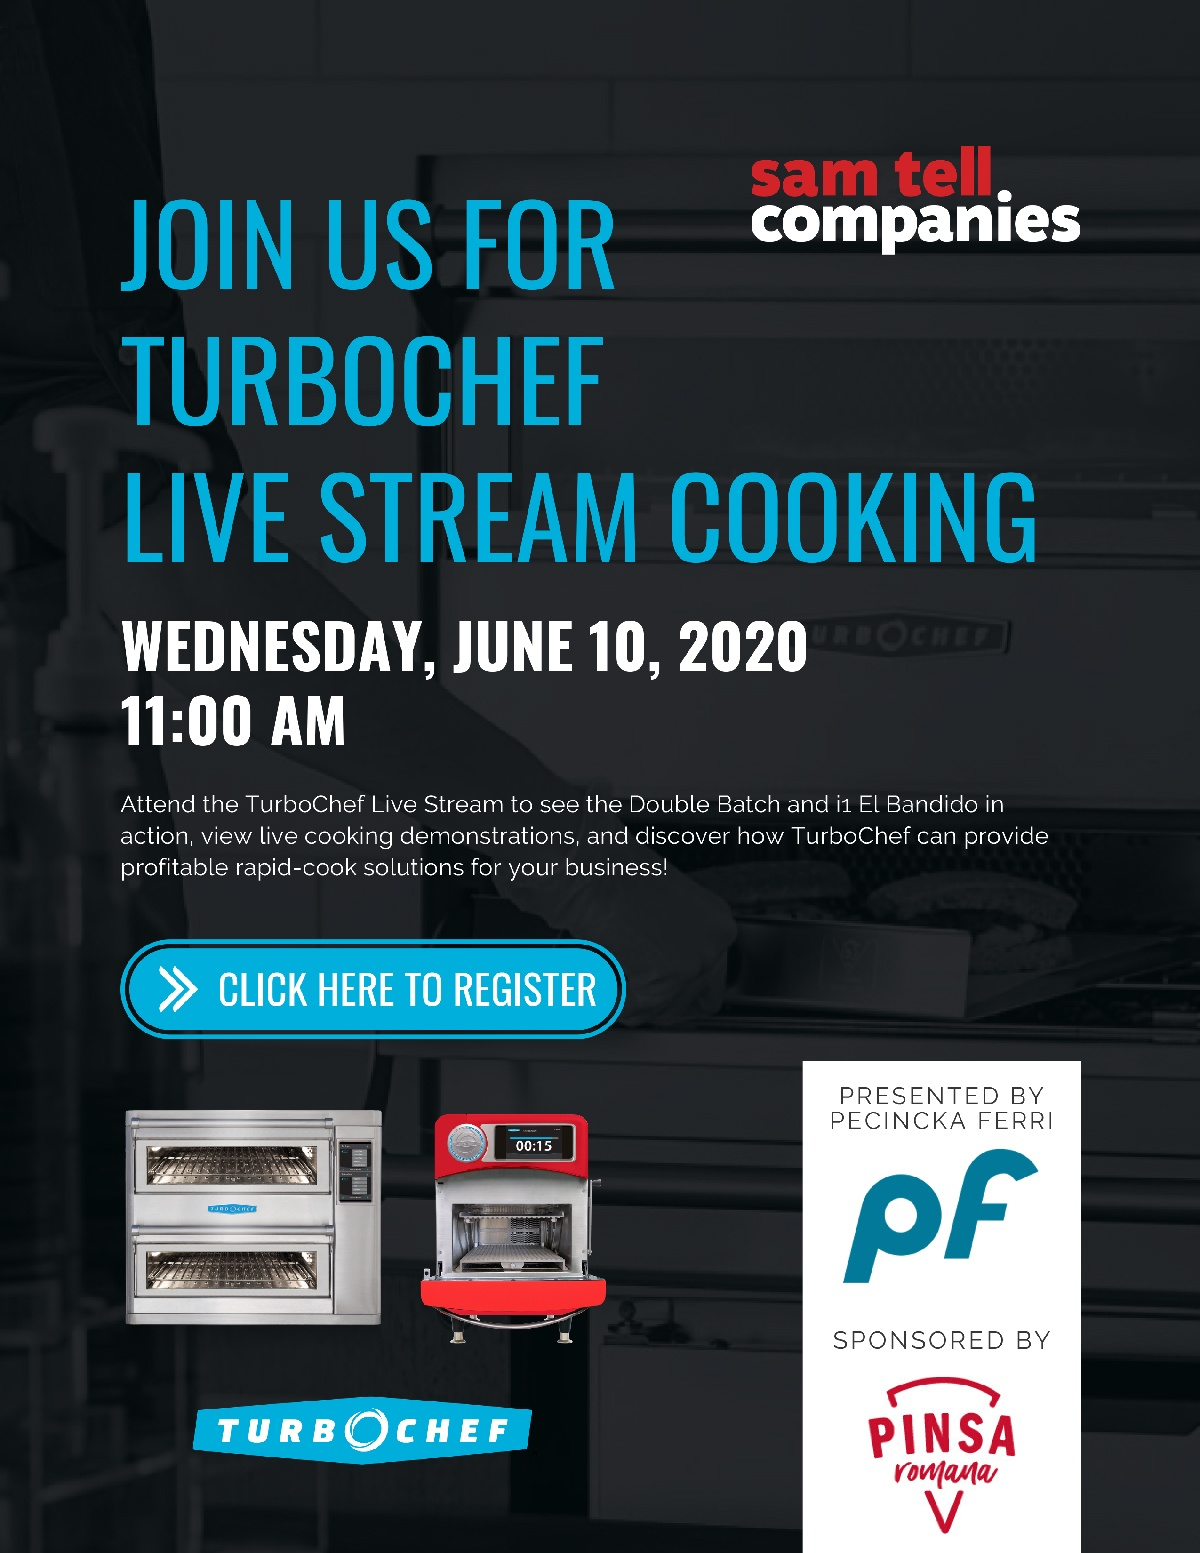 Join us for TurboChef Live Stream Cooking - with picture of TurboChef products and register link